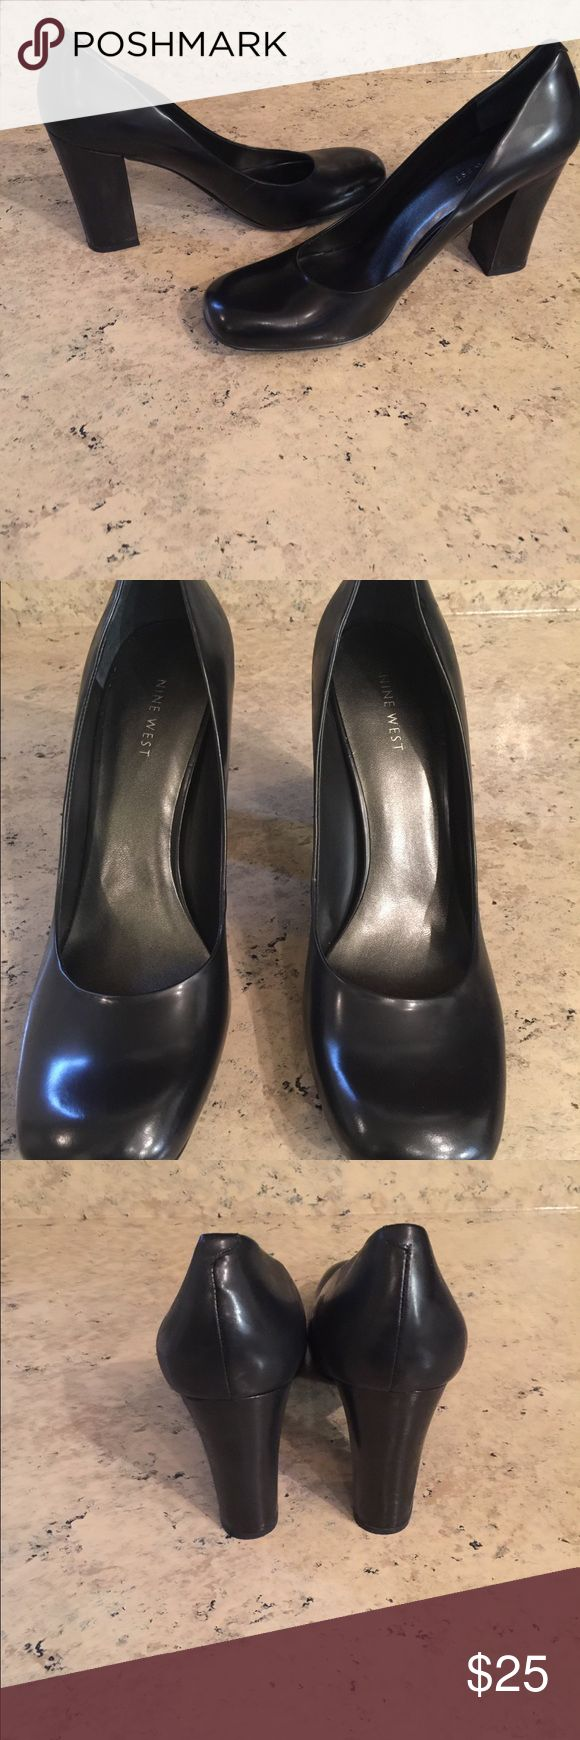 Nine West Black Shoes Only worn once. In excellent condition! Nine West Shoes Heels